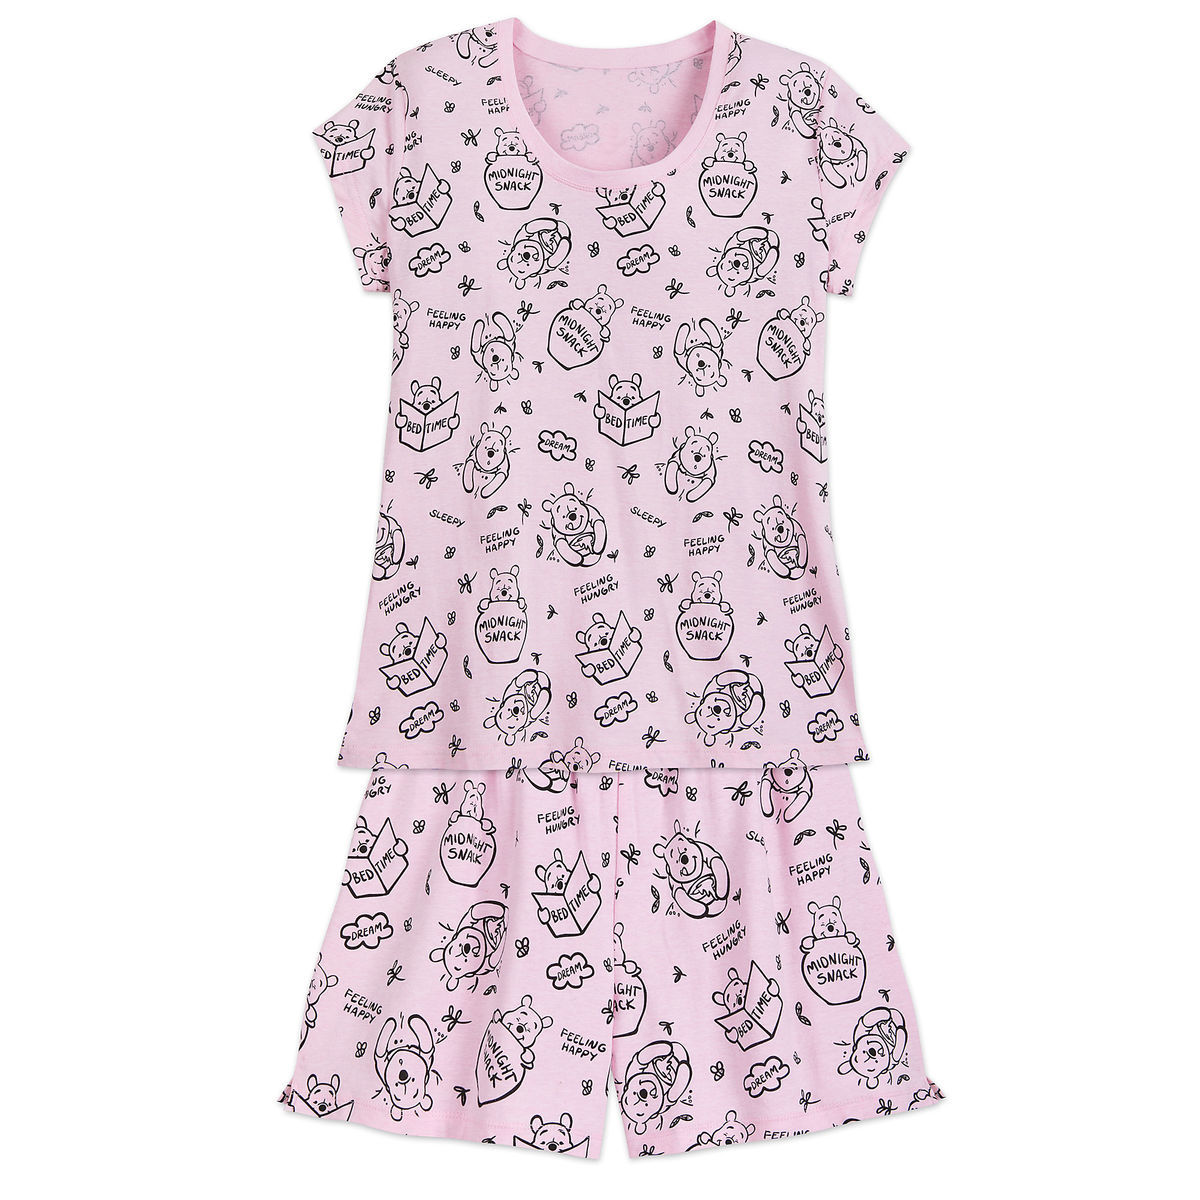 Product Image of Winnie the Pooh Pajama Set for Women   1 8c246bfe9